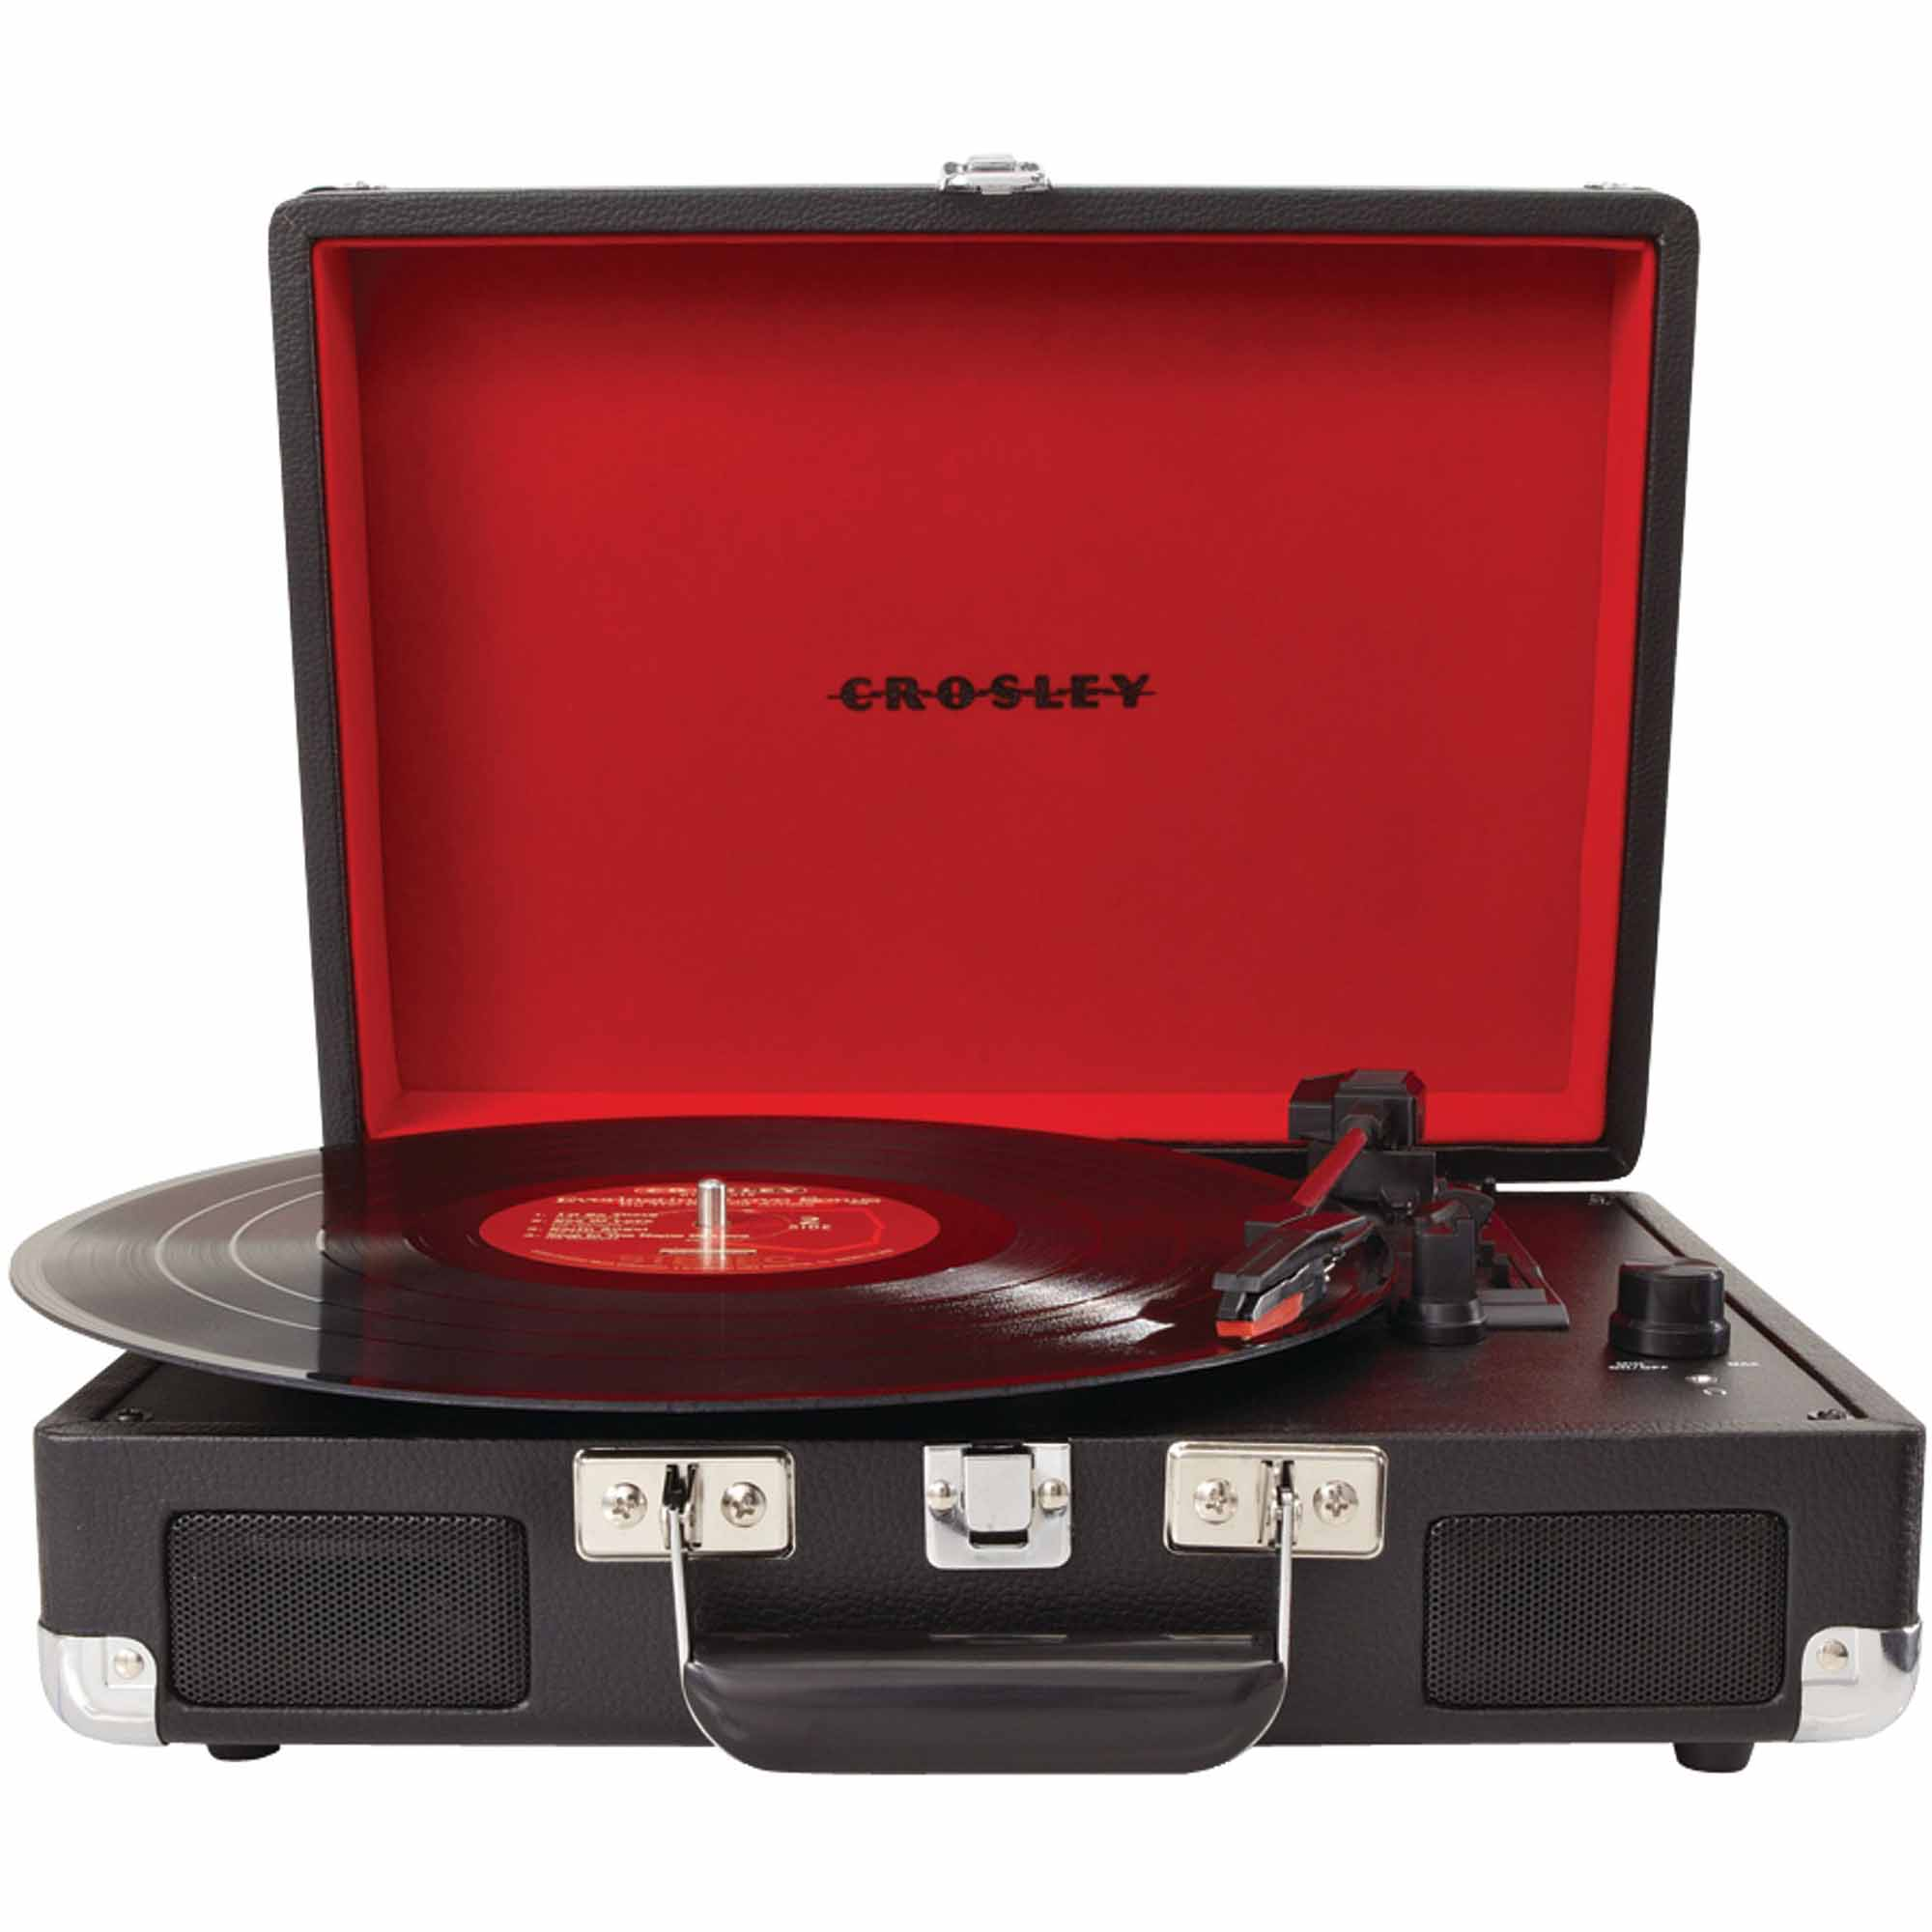 Crosley Radio Cr8005a-bk Cruiser Portable Turntable, Black